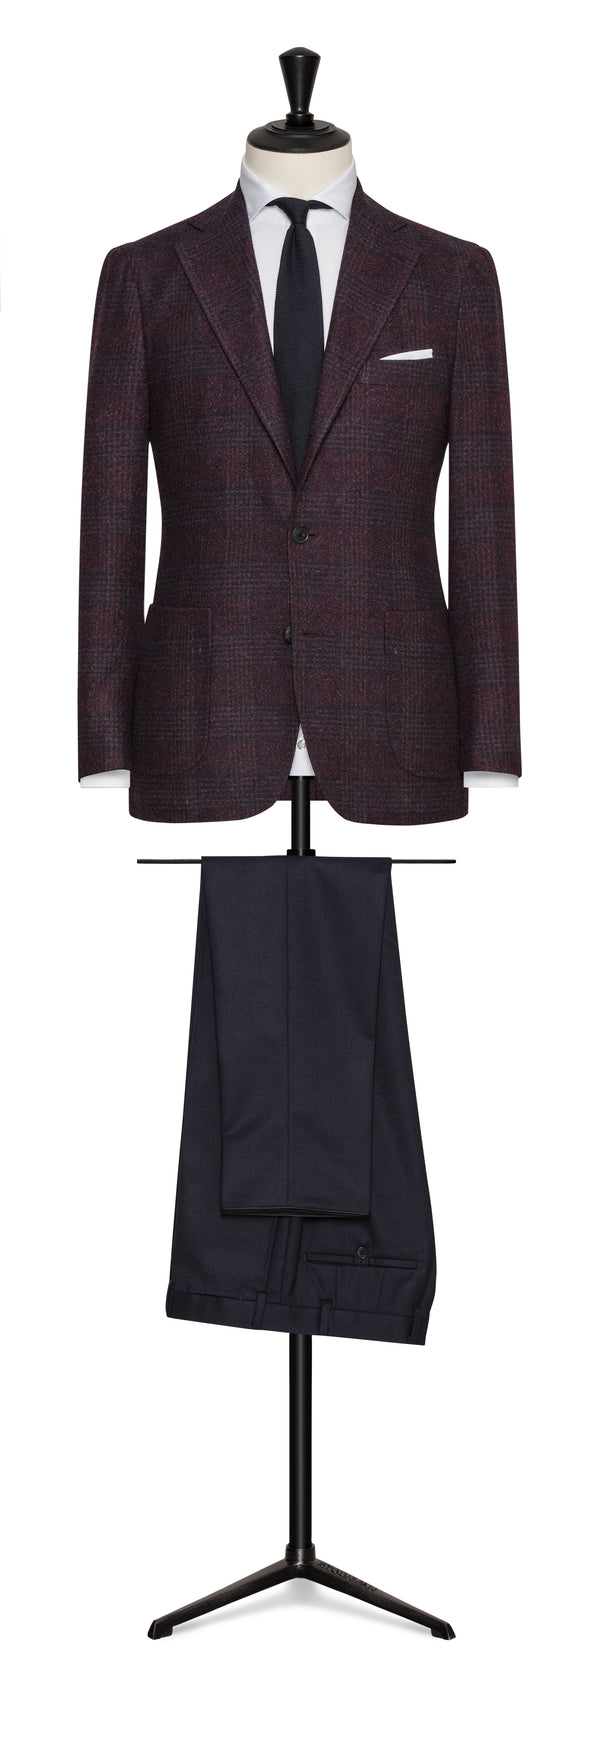 Burgundy Check Wool Cotton Blend Sport Coat